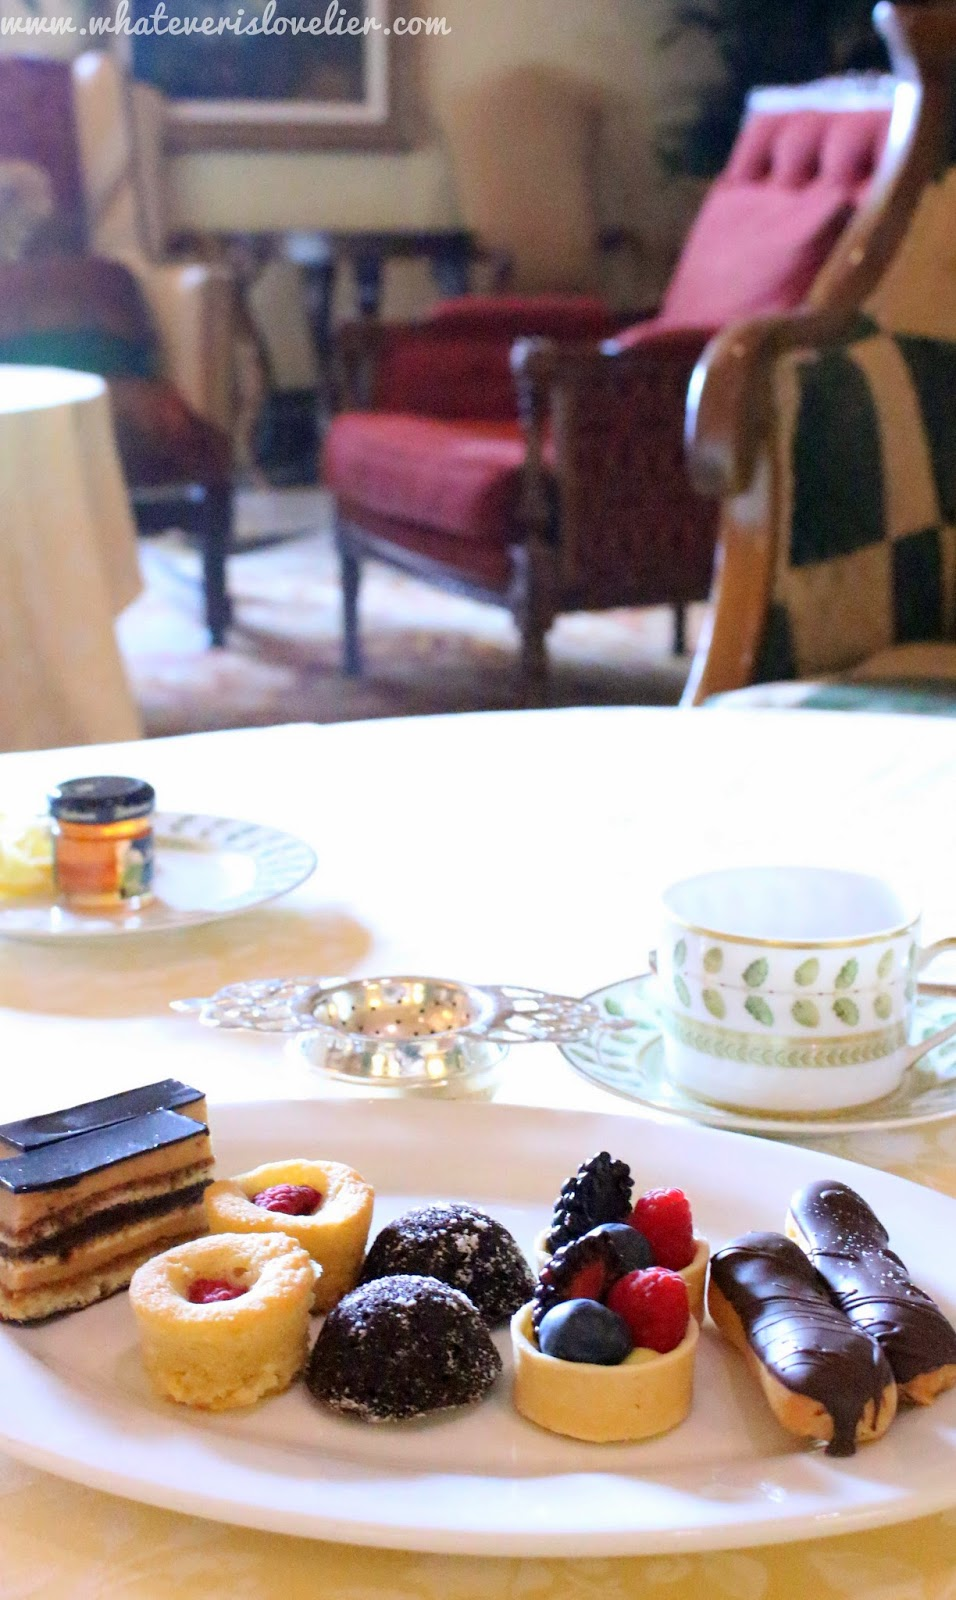 Travel Tuesday: Afternoon Tea at the Grand Del Mar, CA